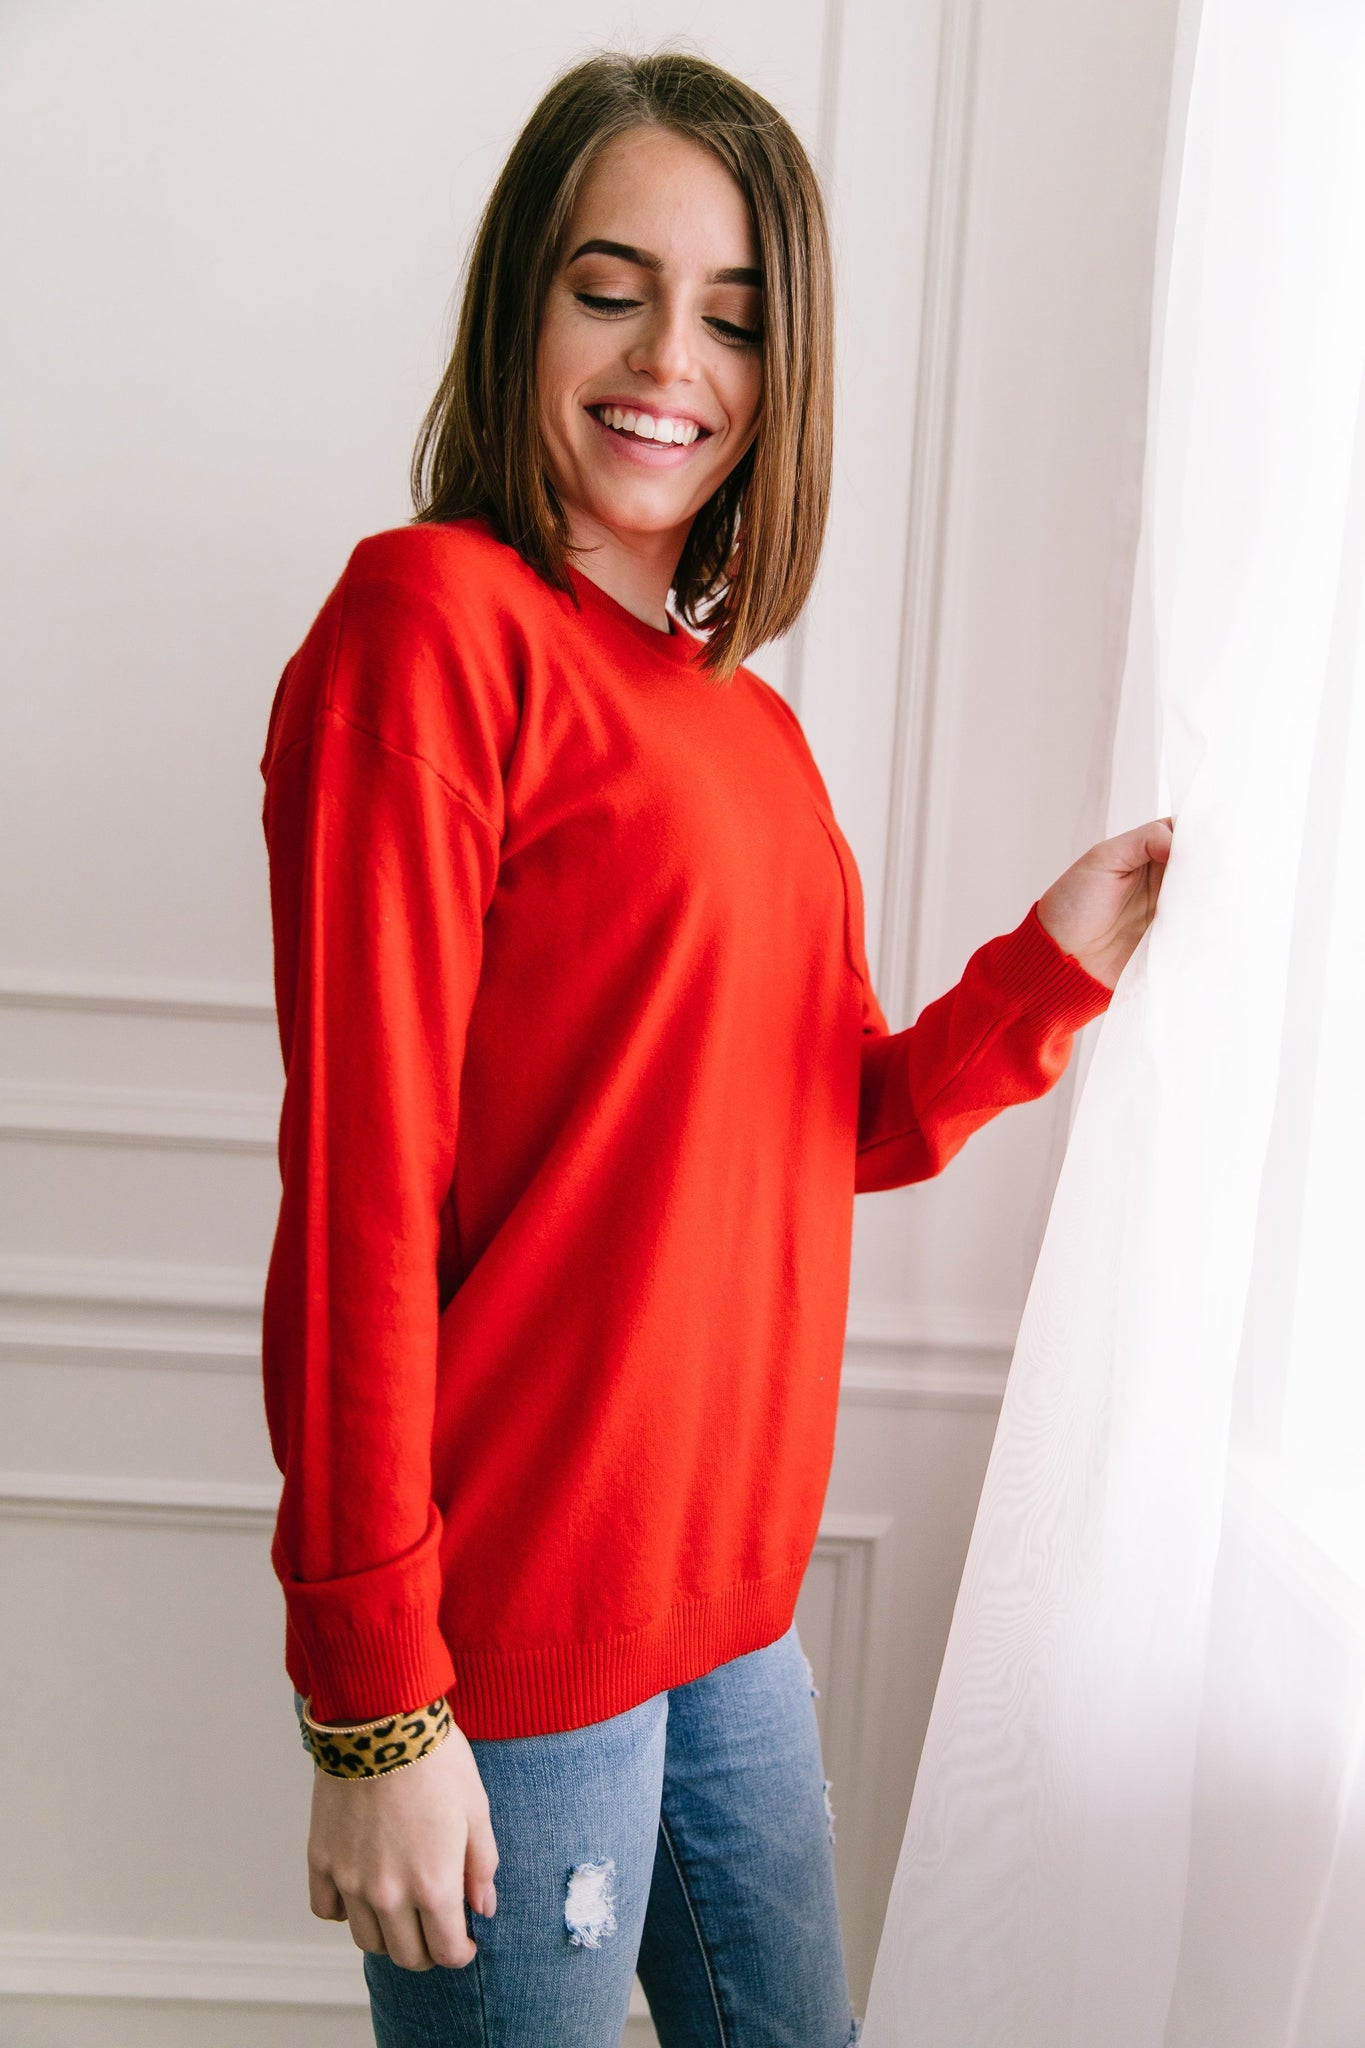 Top 'O The Mornin' Sweater In Poppy